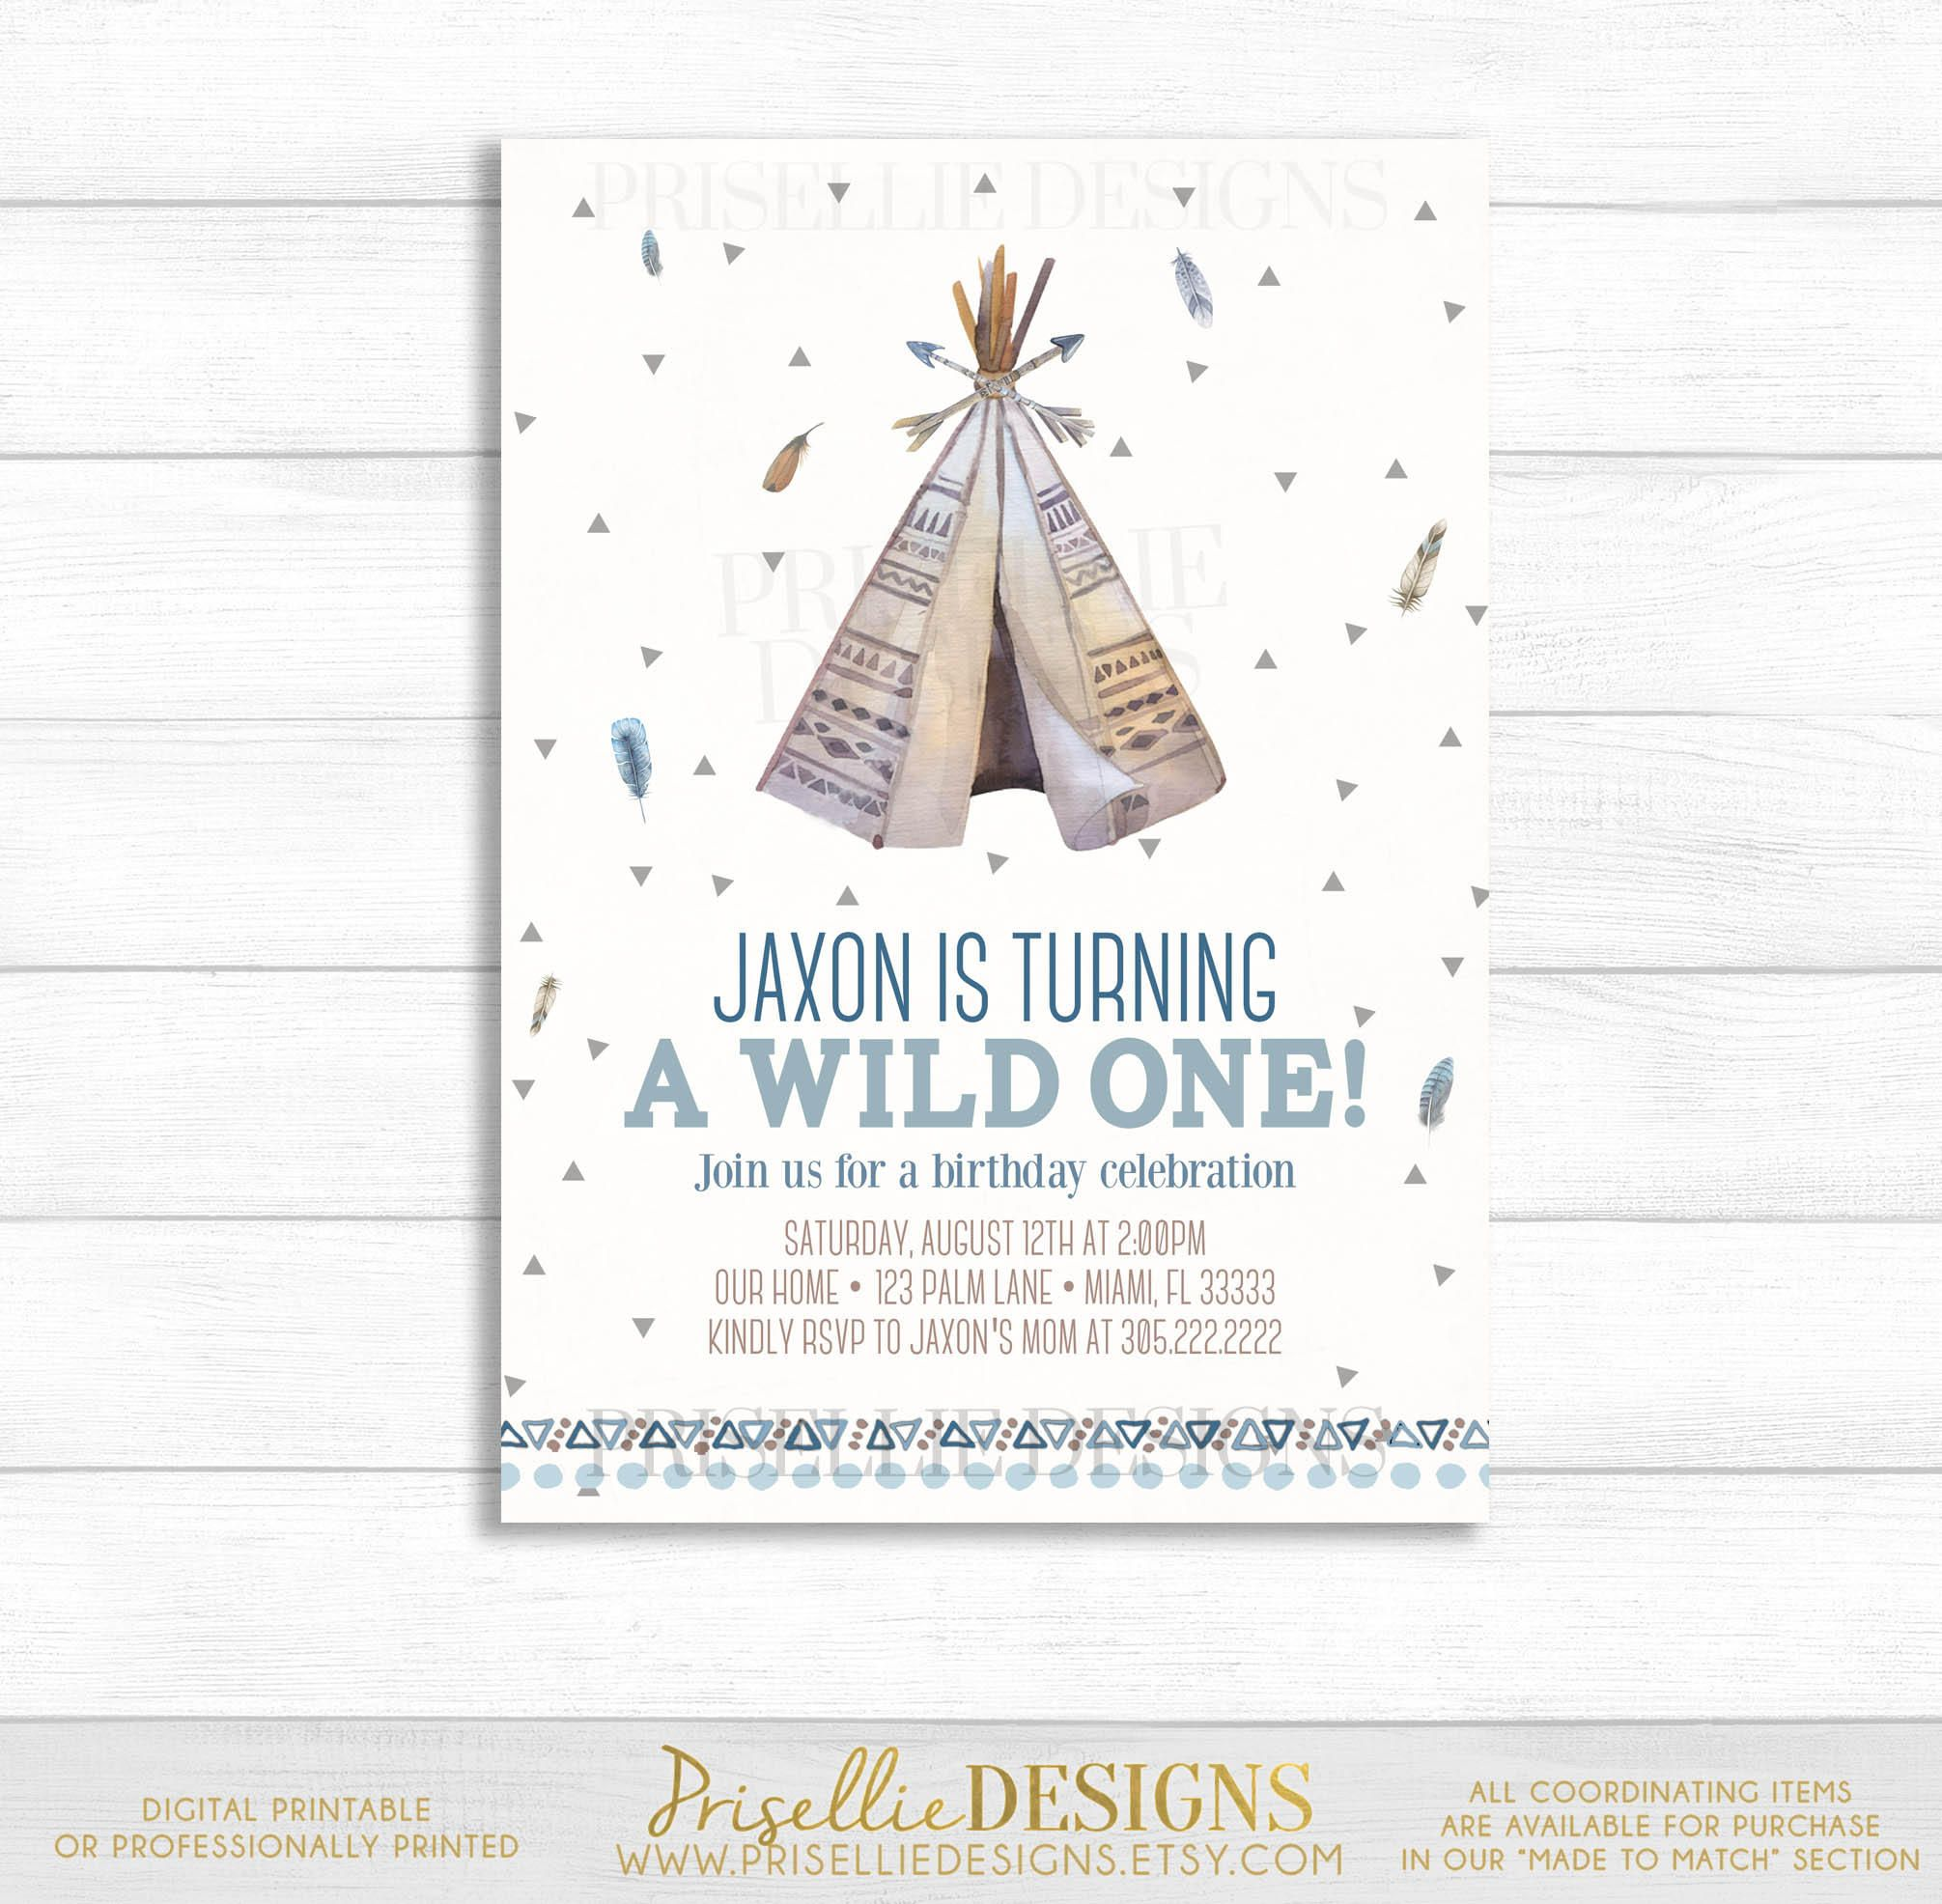 Wild One Birthday Invitation First Tribal TeePee Boho Boy Triangle By PrisellieDesigns On Etsy